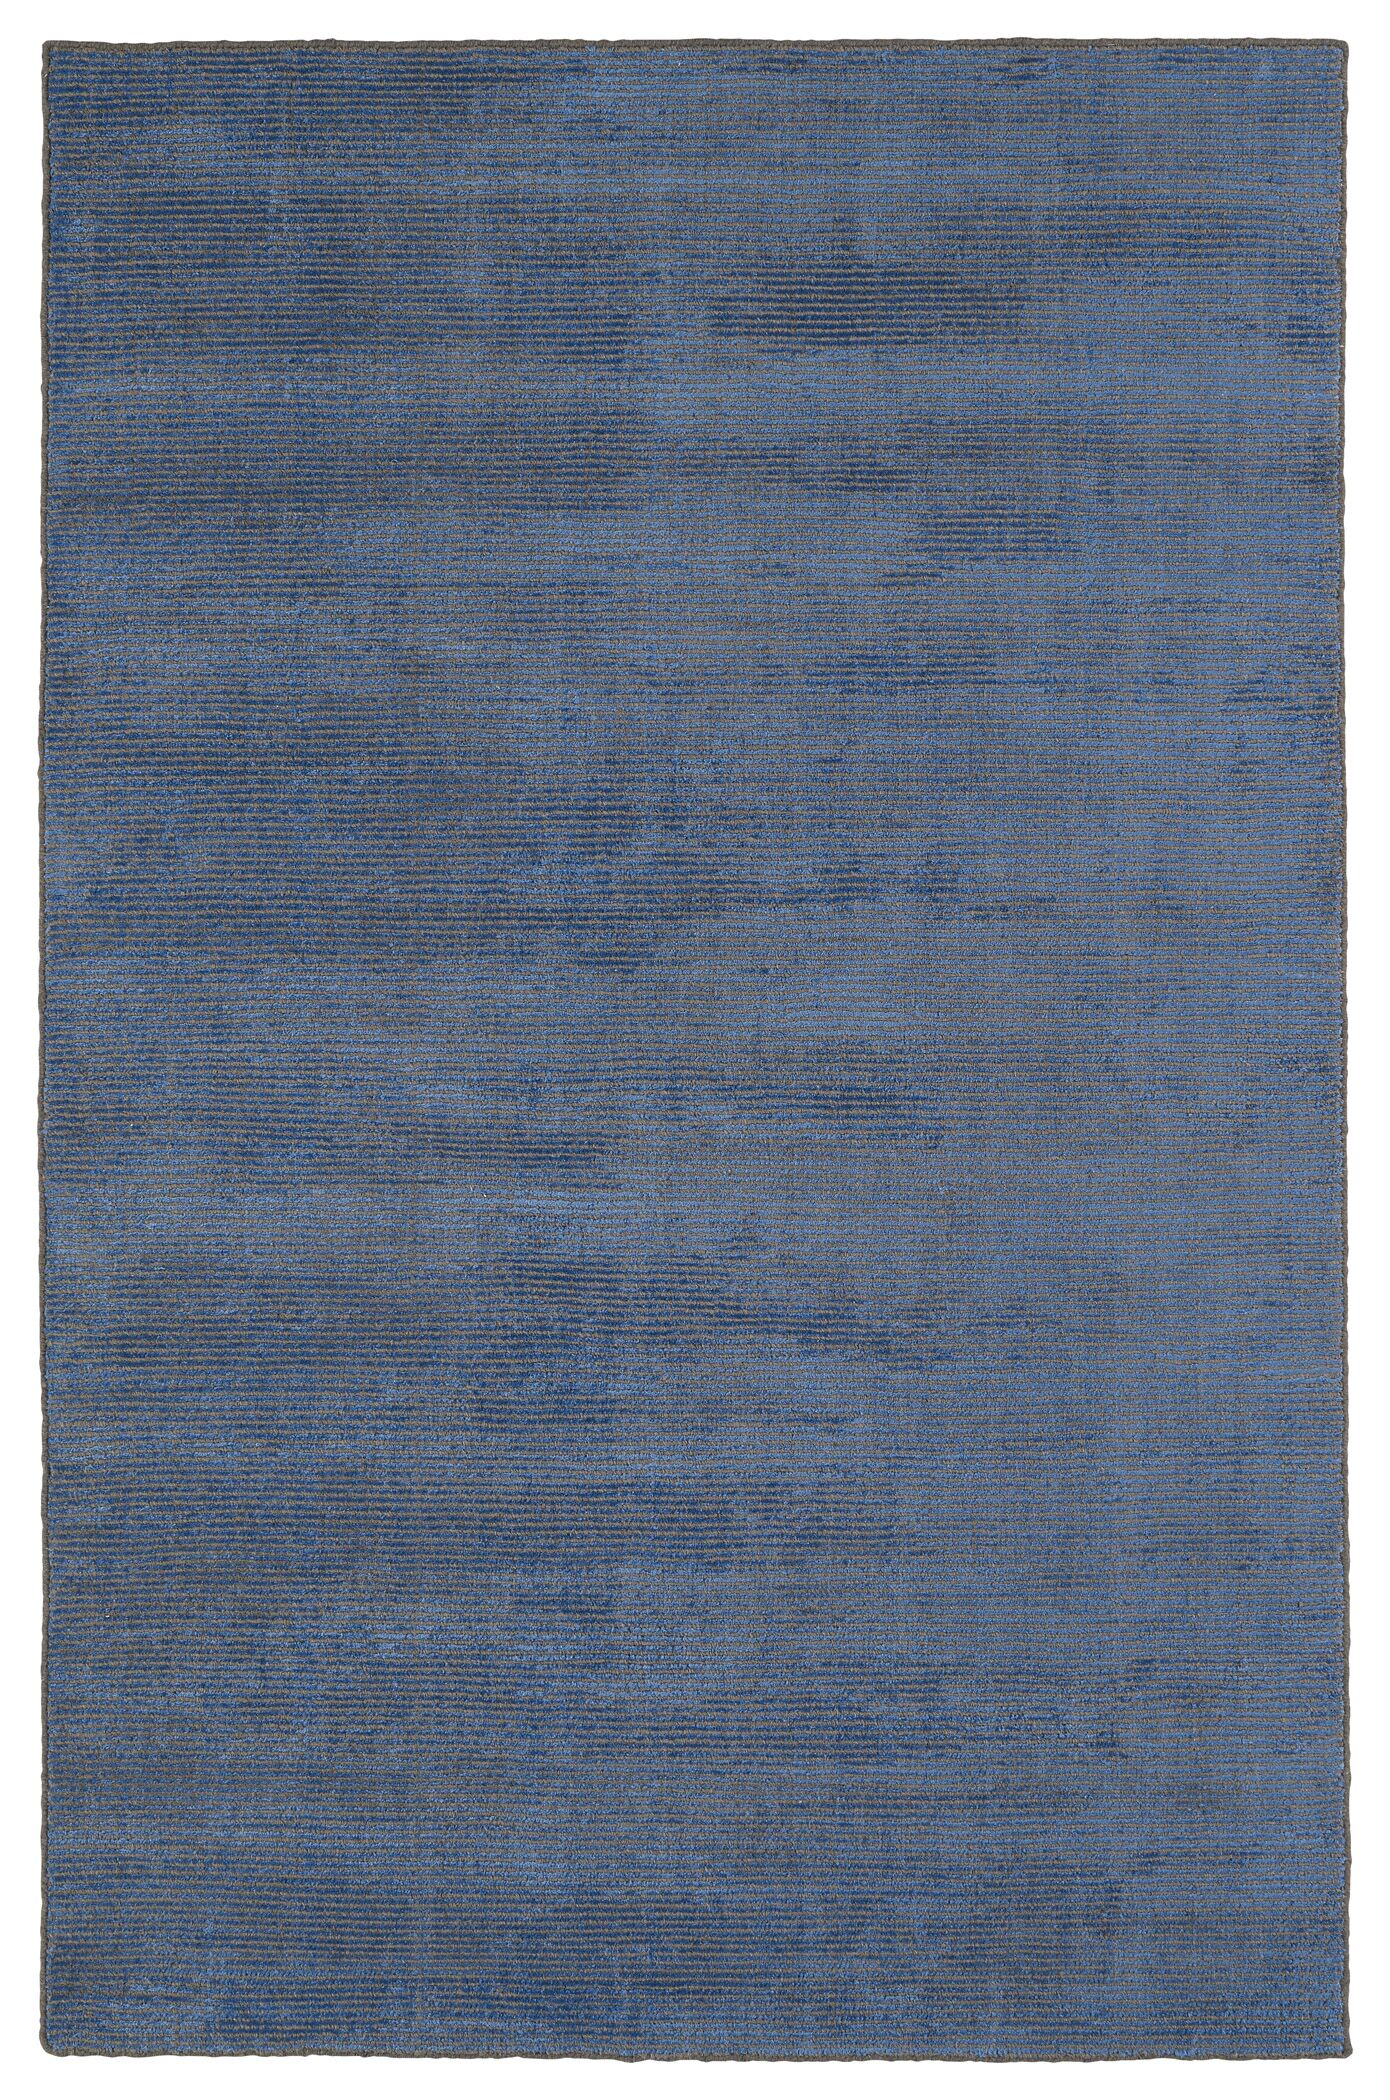 Claverham Hand Woven Blue Area Rug Rug Size: Rectangle 3' x 5'